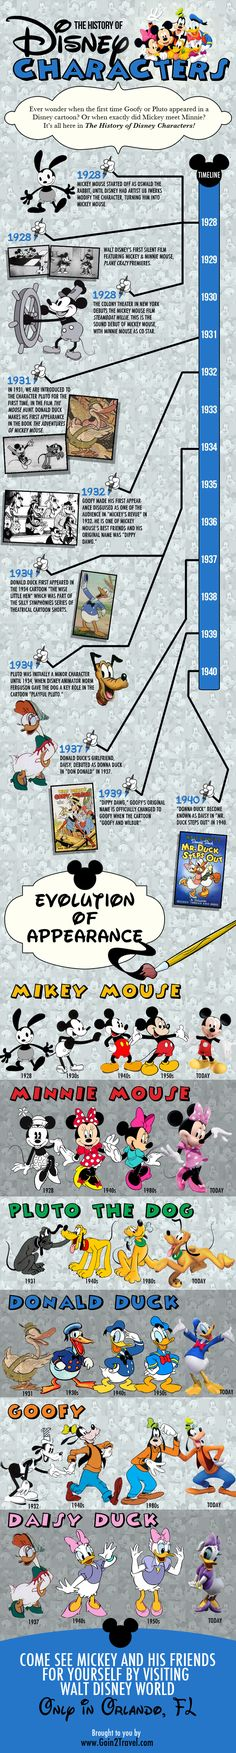 History of Disney Characters